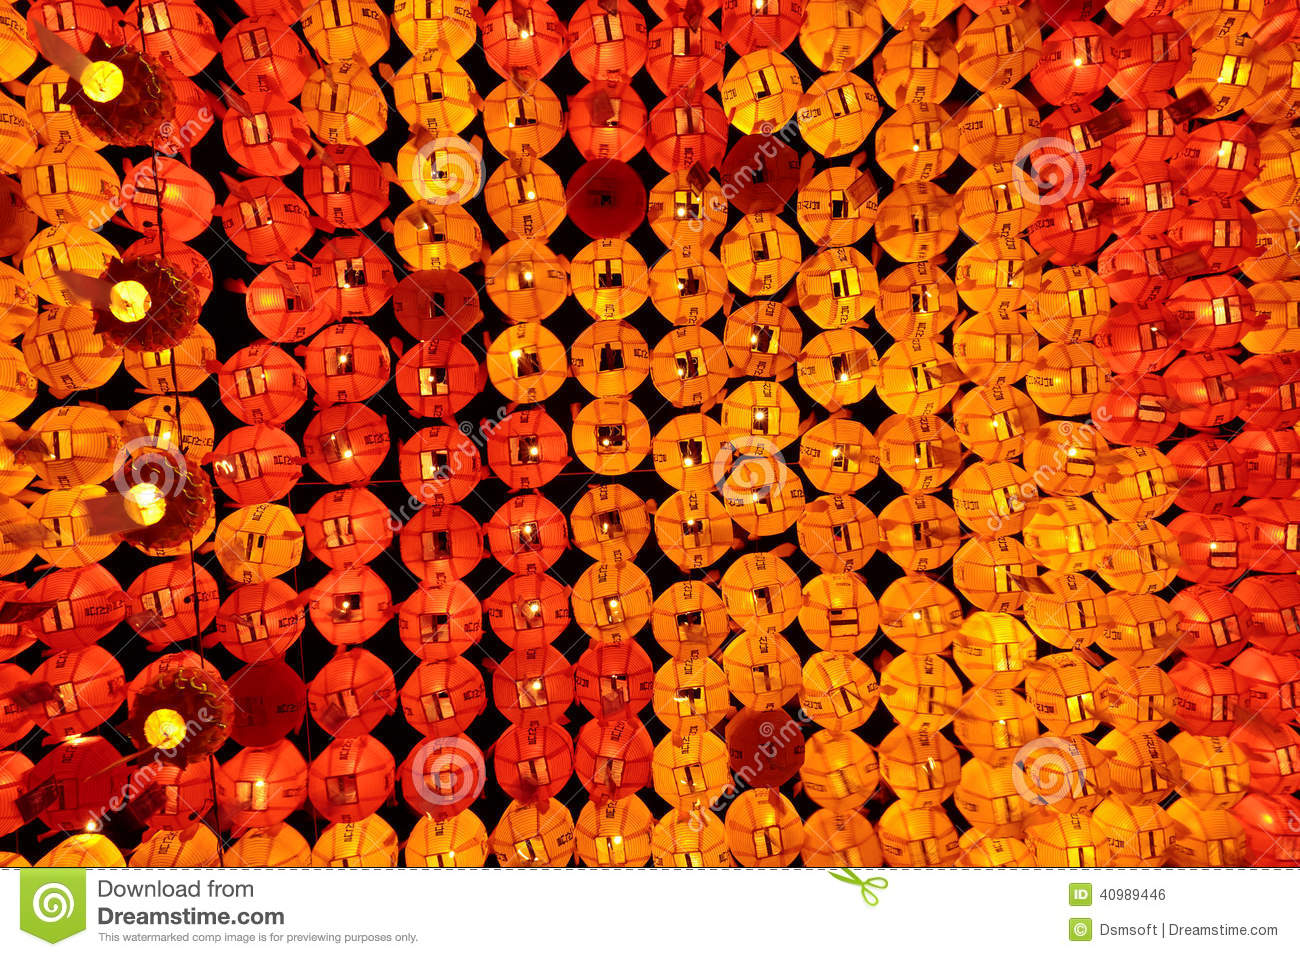 Glowing yellow and red lanterns